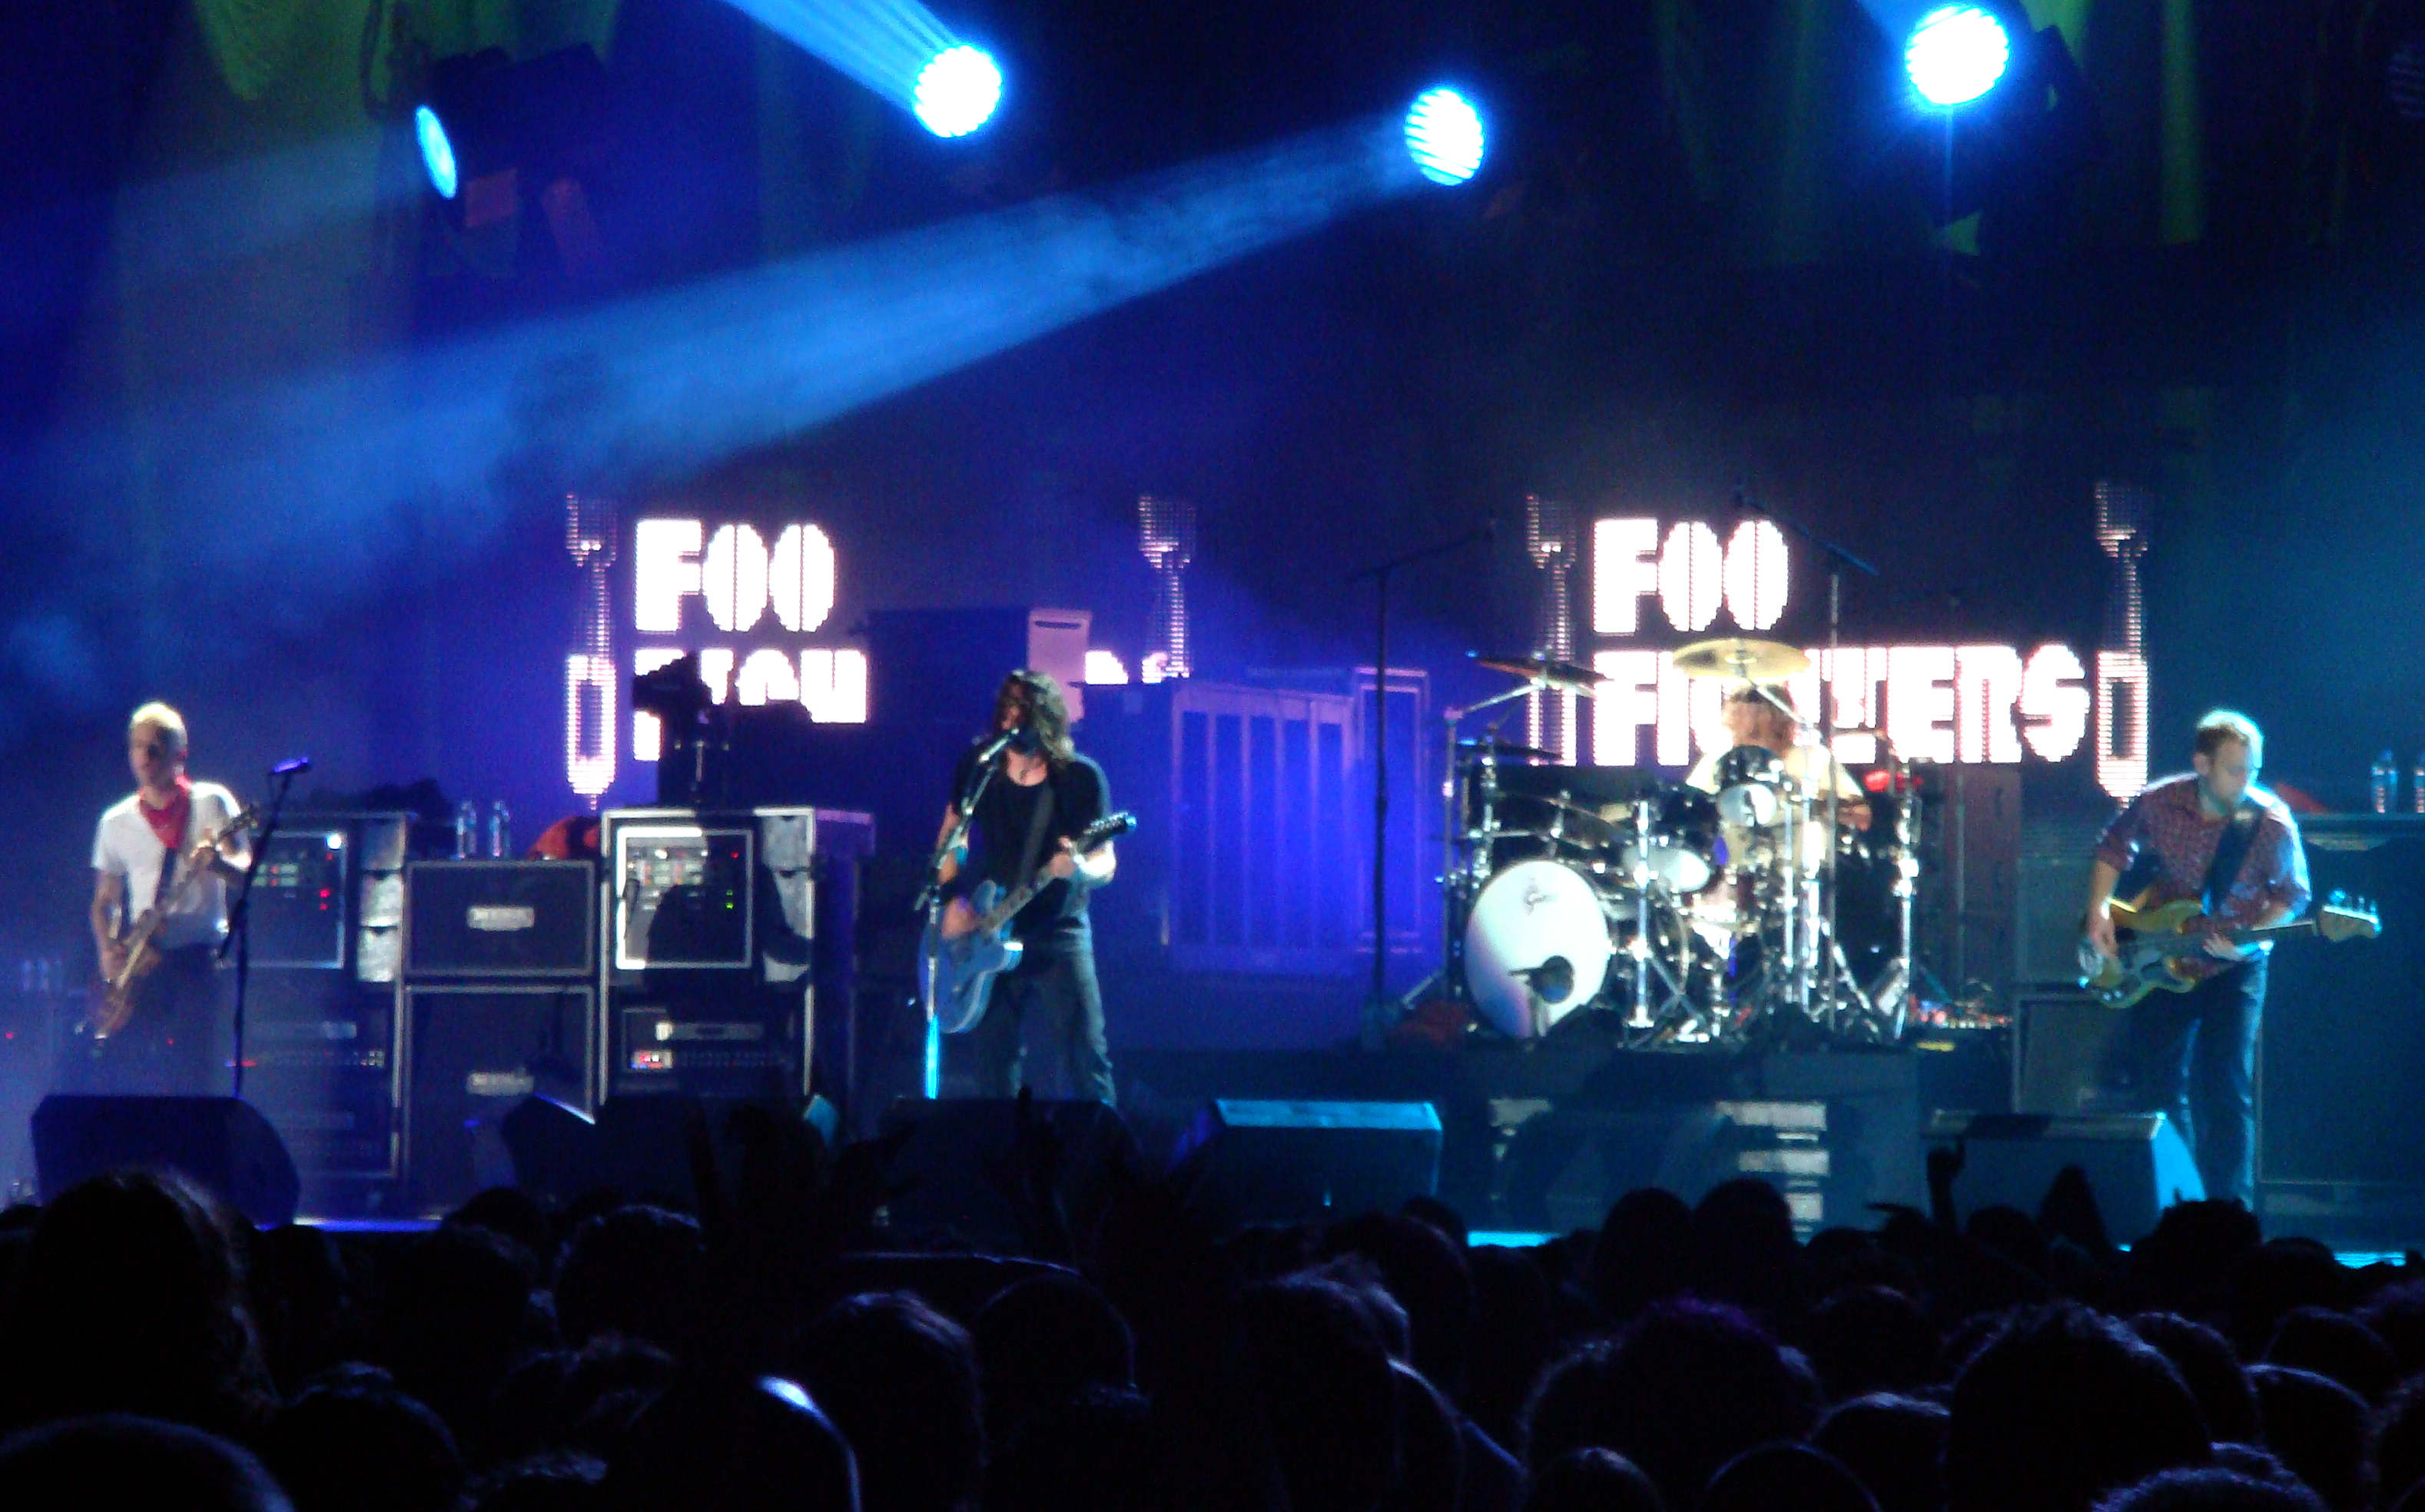 Foo Fighters Wallpapers High Quality